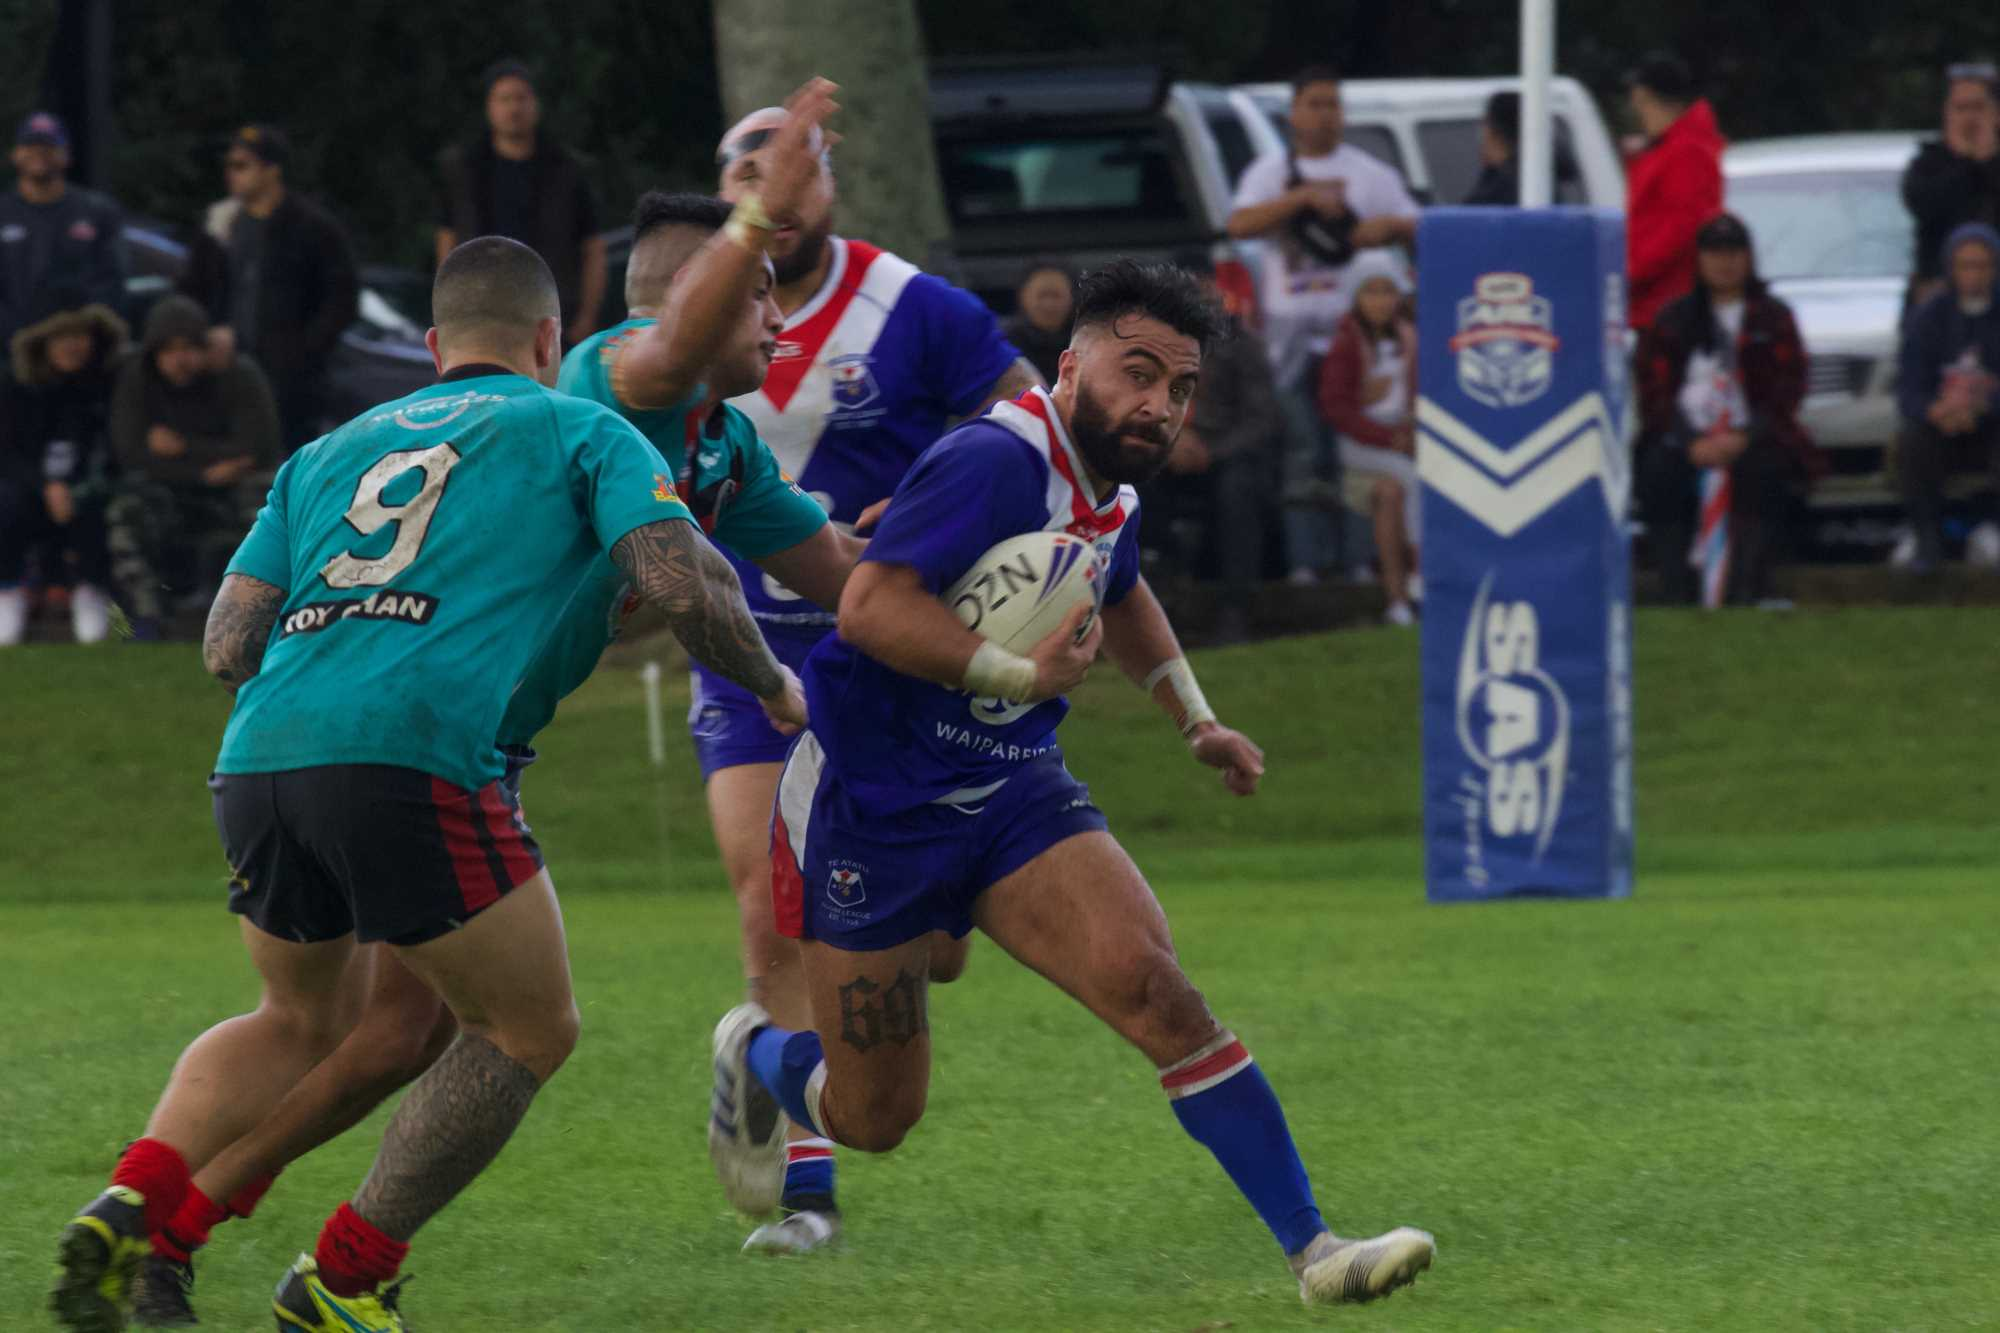 Dominant first half hands Leopards victory in Fox Memorial Premiership